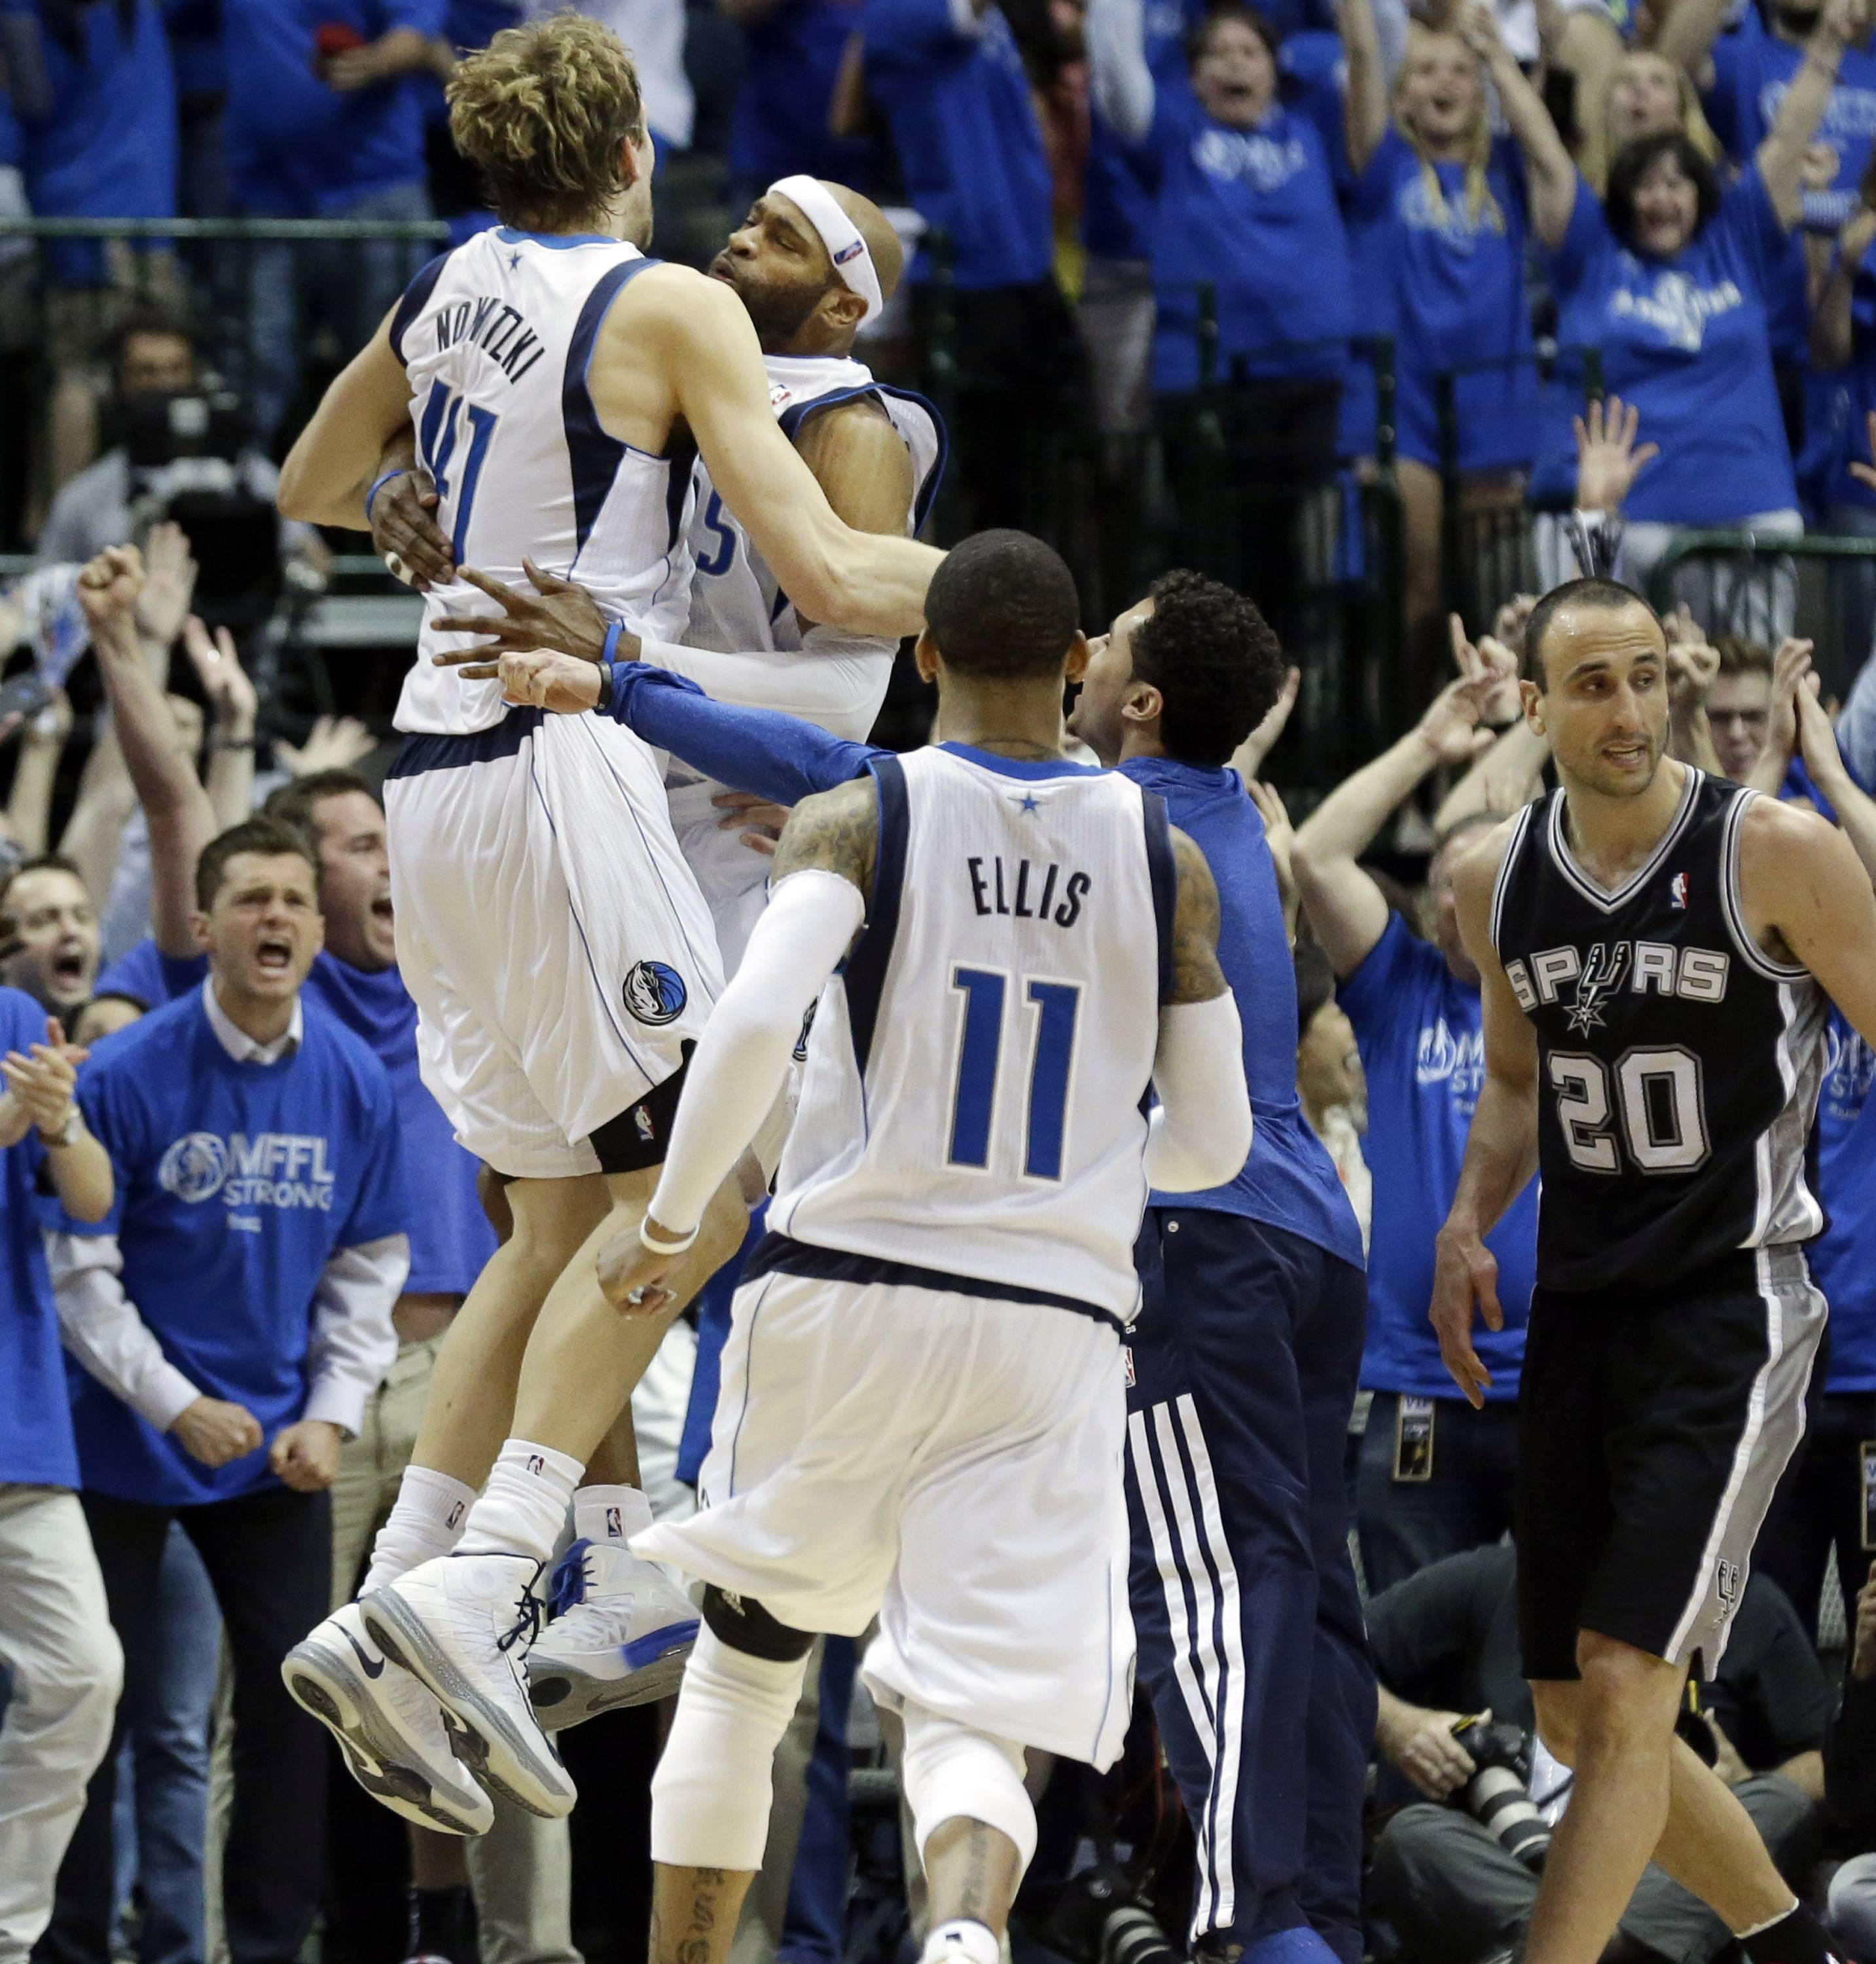 Dallas Mavericks guard Vince Carter, second from left, celebrates with Dirk Nowitzki (41), as teammate Monta Ellis (11) and San Antonio Spurs' Manu Ginobili (20) look on, after Carter made the game-winning 3-point basket at the buzzer of the fourth quarter in Game 3 in the first-round of the NBA basketball playoffs Saturday in Dallas. The Mavericks won 109-108.